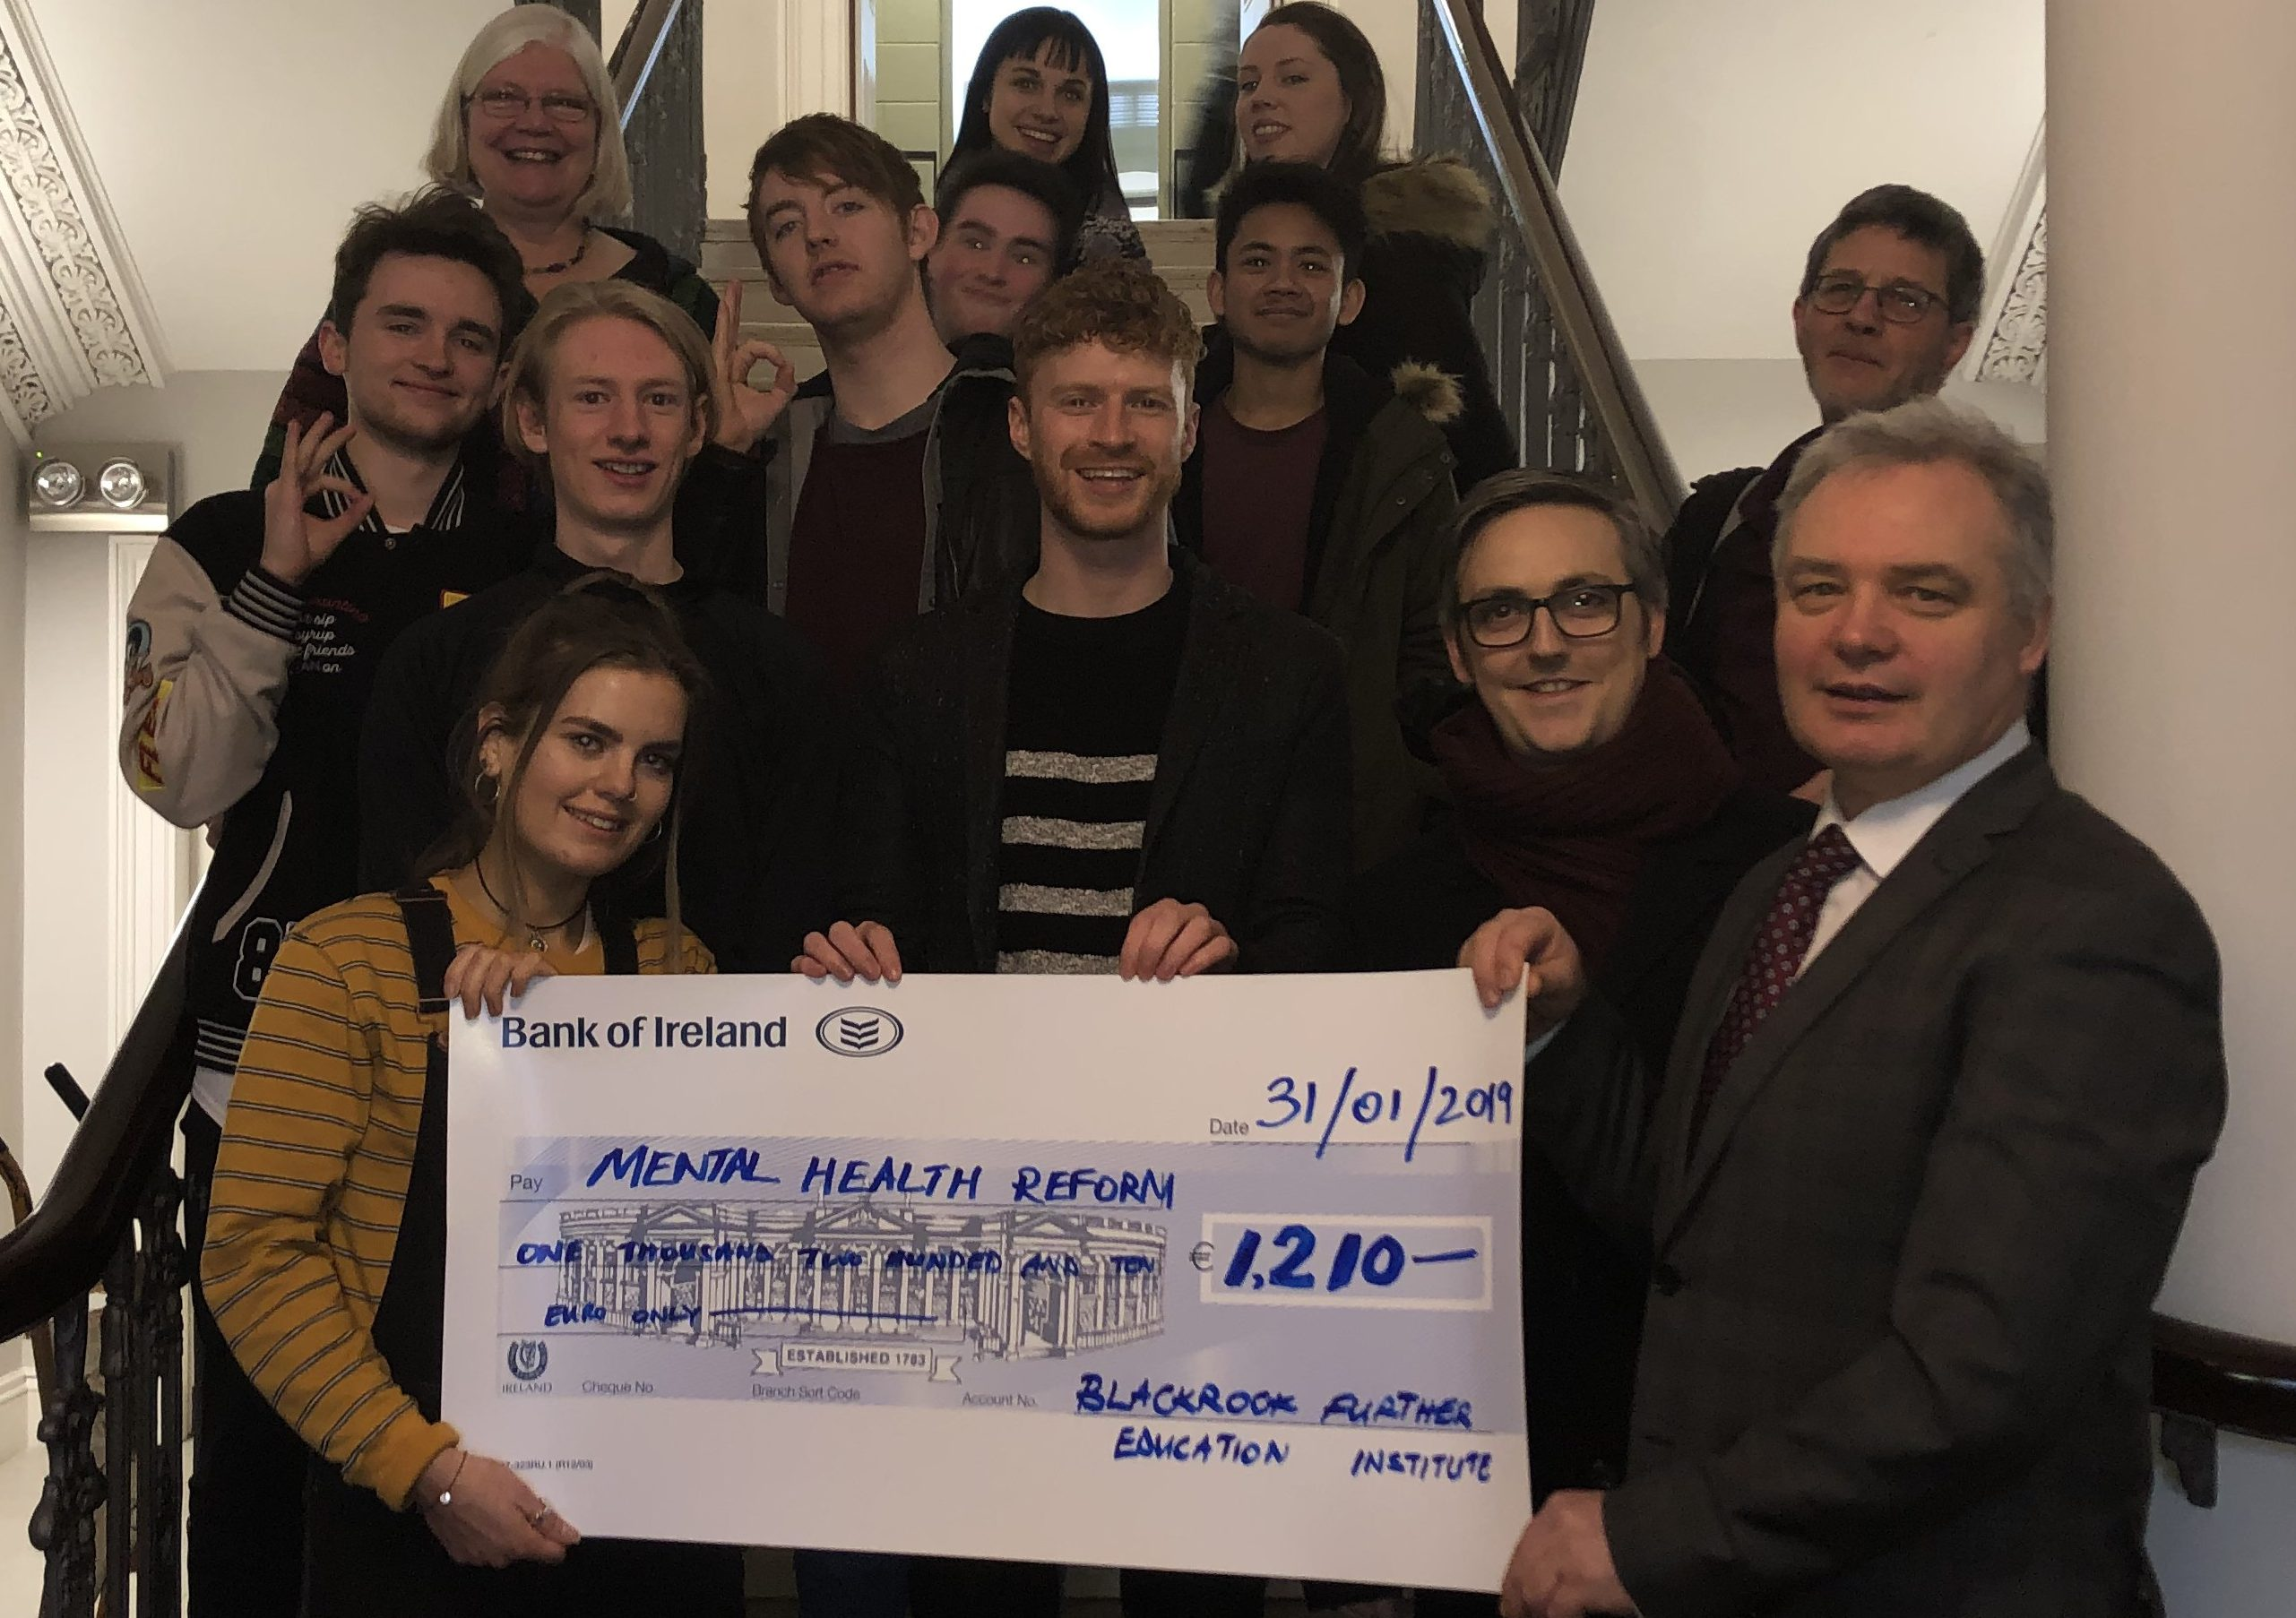 Thank you Blackrock Further Education Institute!